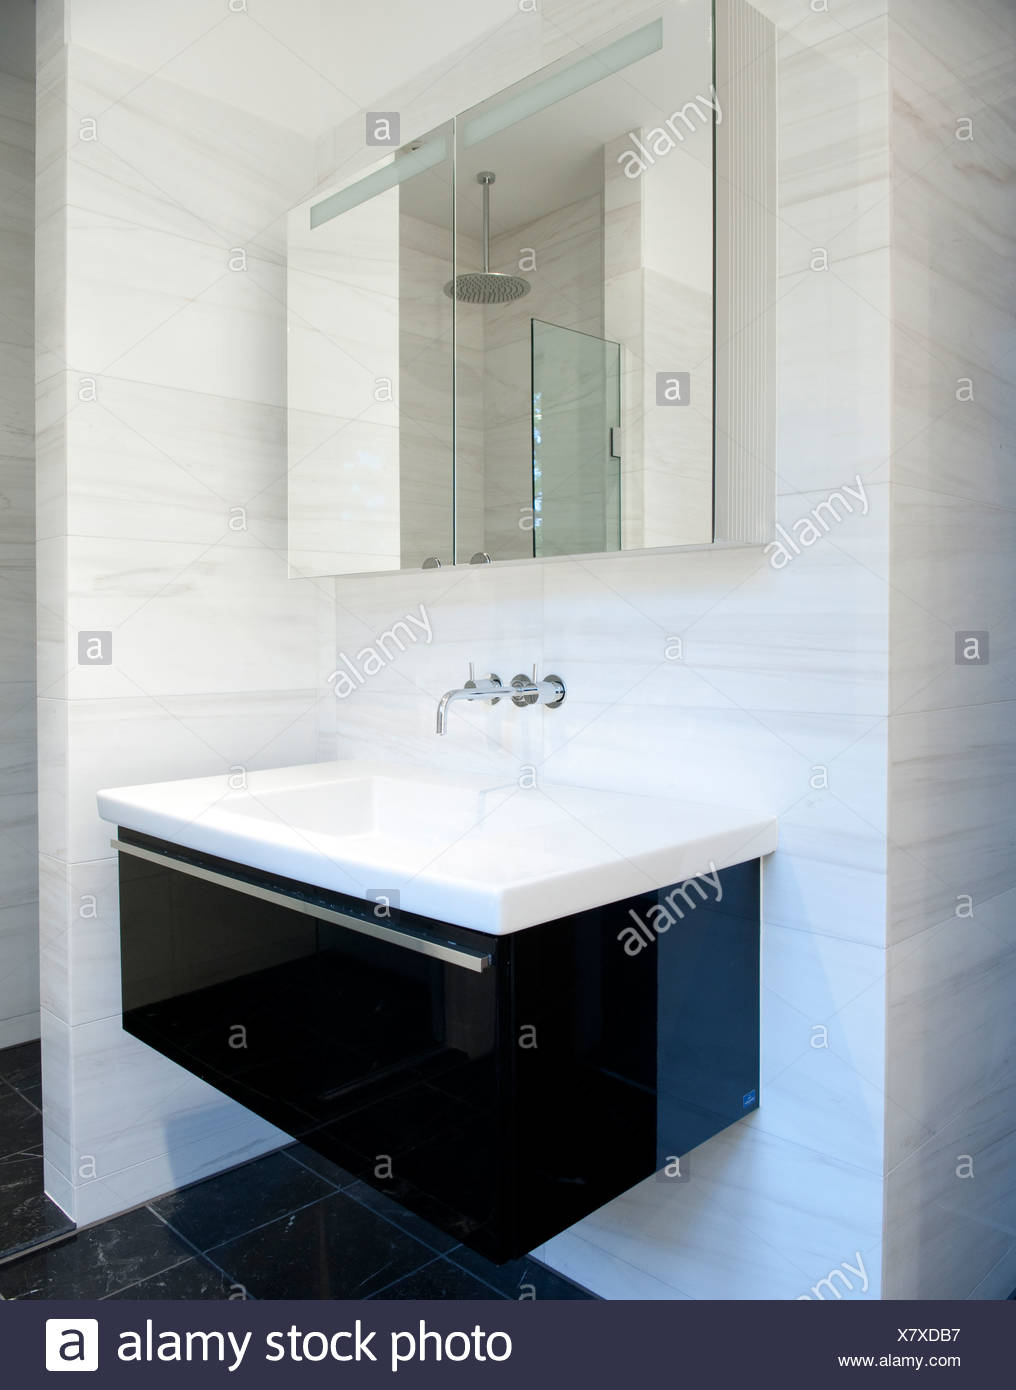 A bathroom sink and cabinet - Stock Image